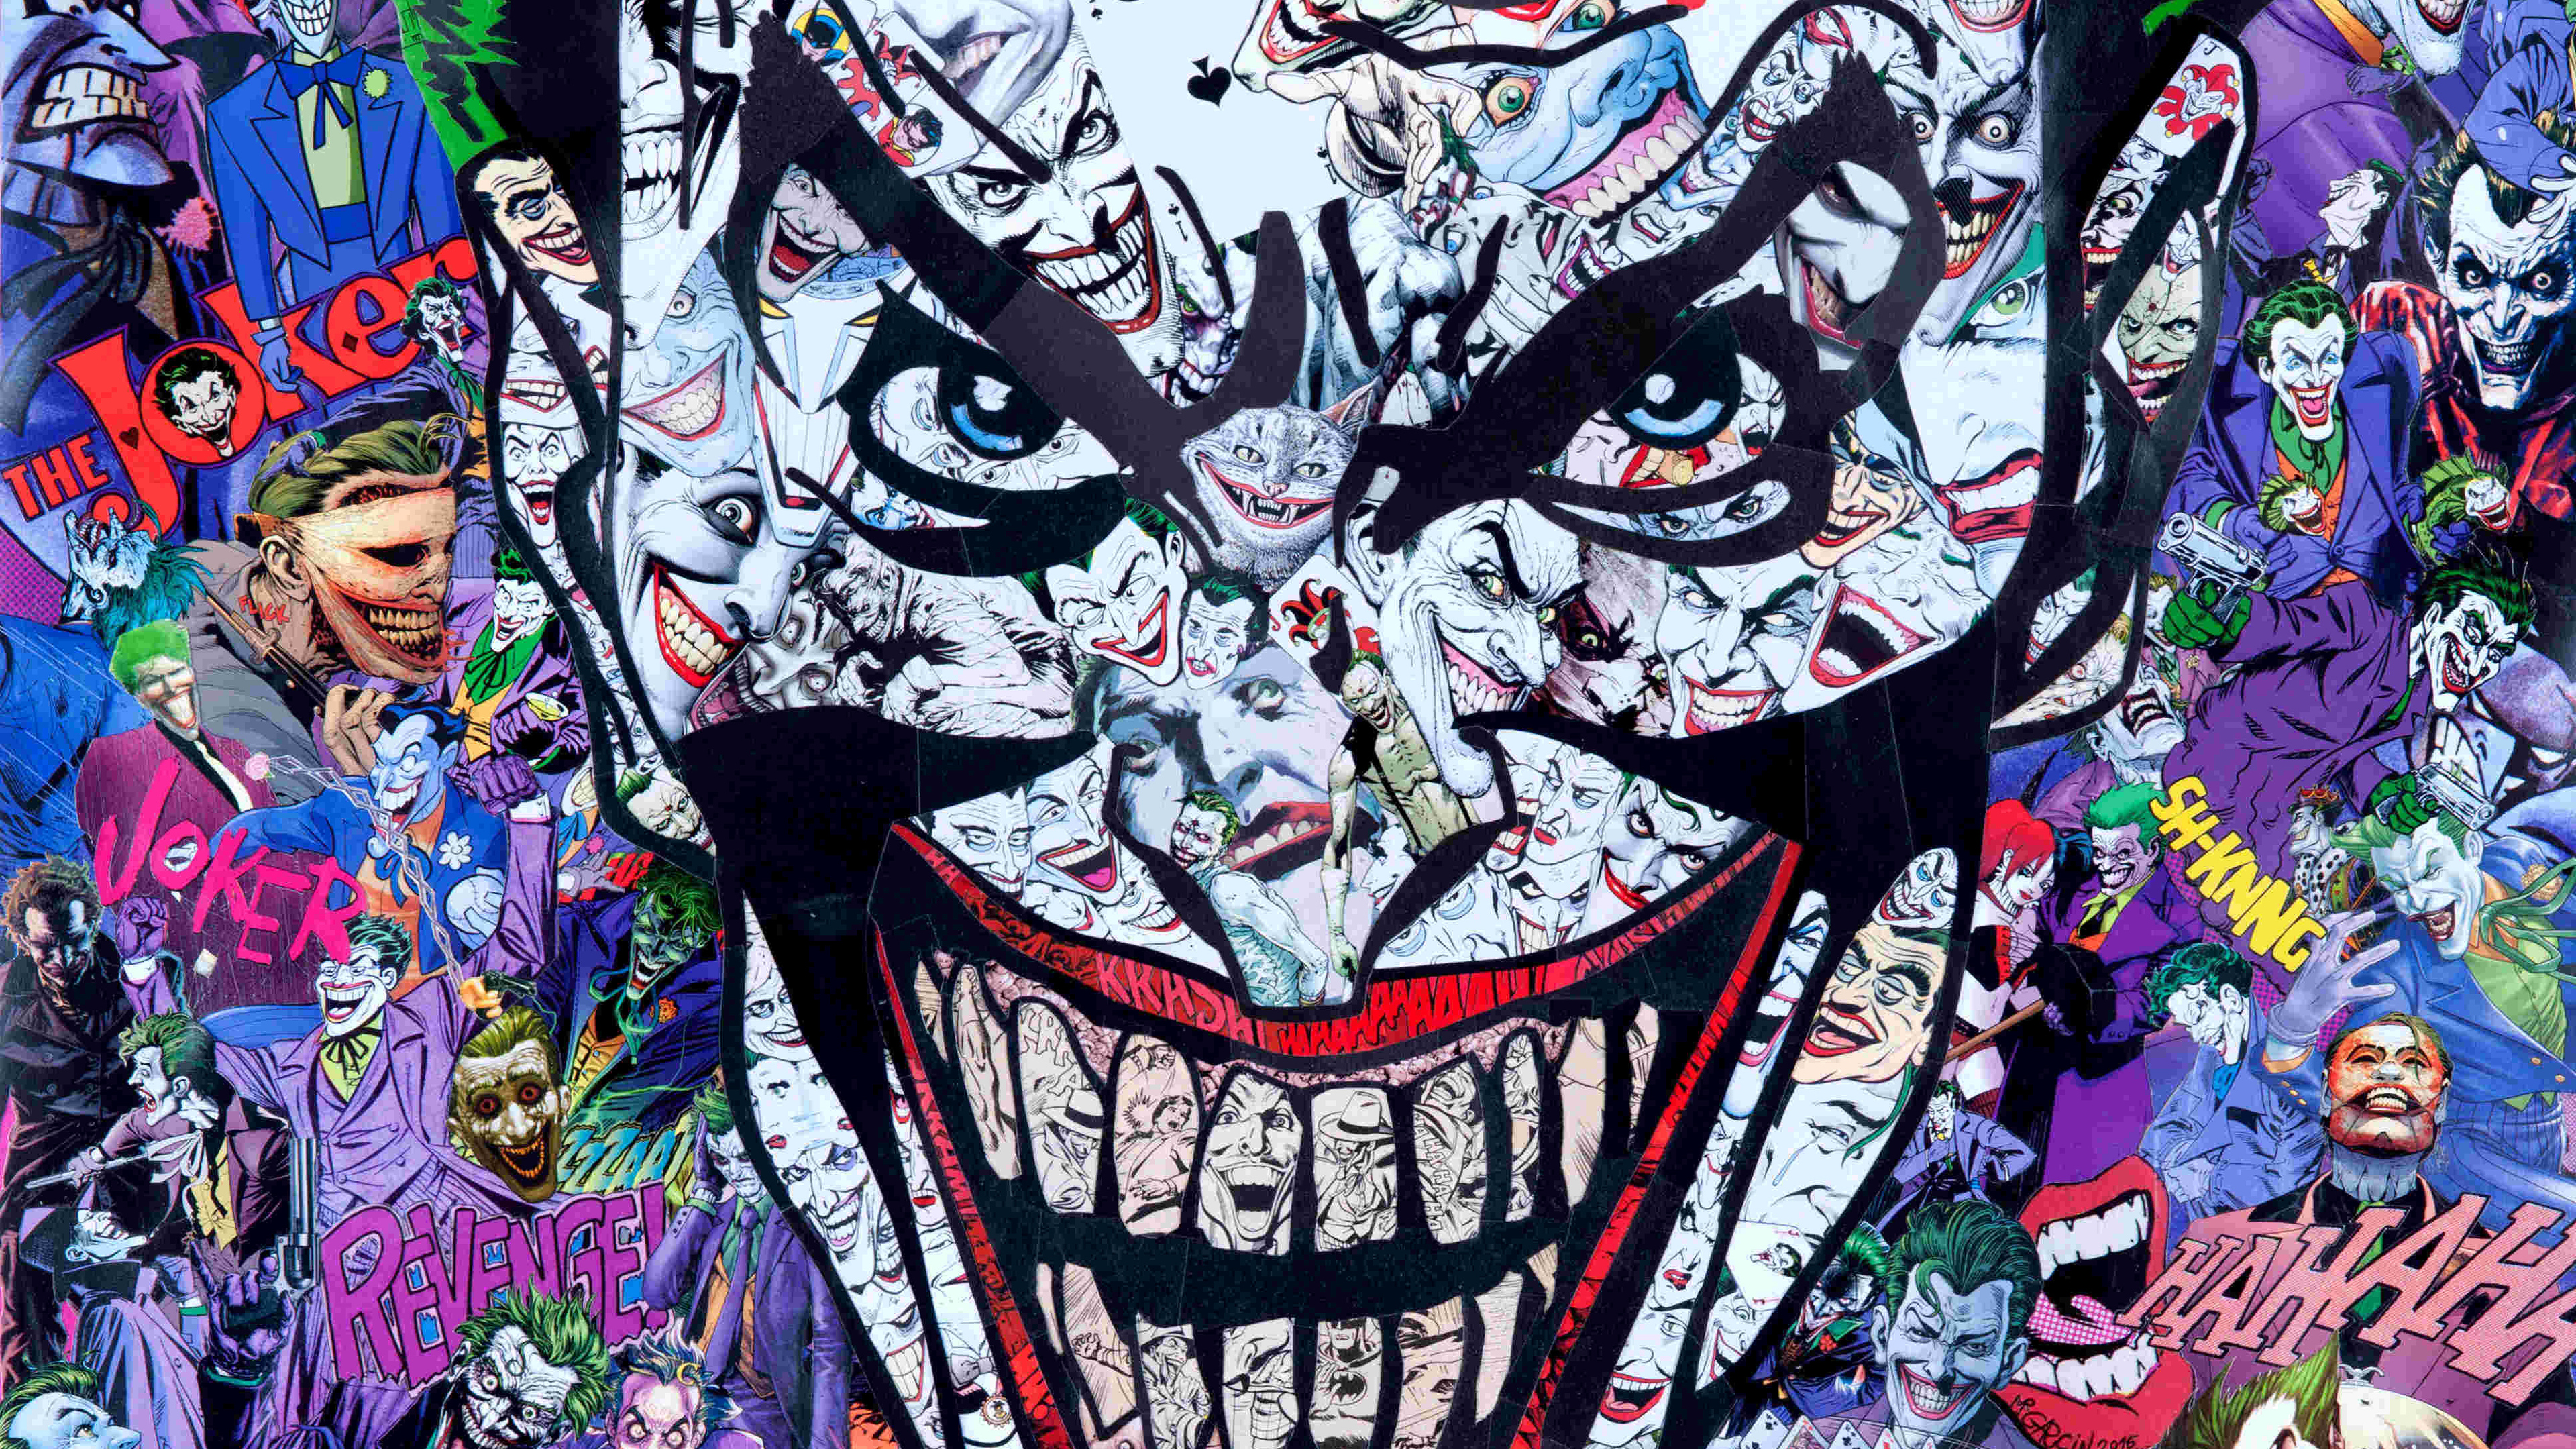 Wallpaper 4k Joker Hahaha 4k 4k Wallpapers Artist Wallpapers Artwork Wallpapers Digital Art Wallpapers Hd Wallpapers Joker Wallpapers Superheroes Wallpapers